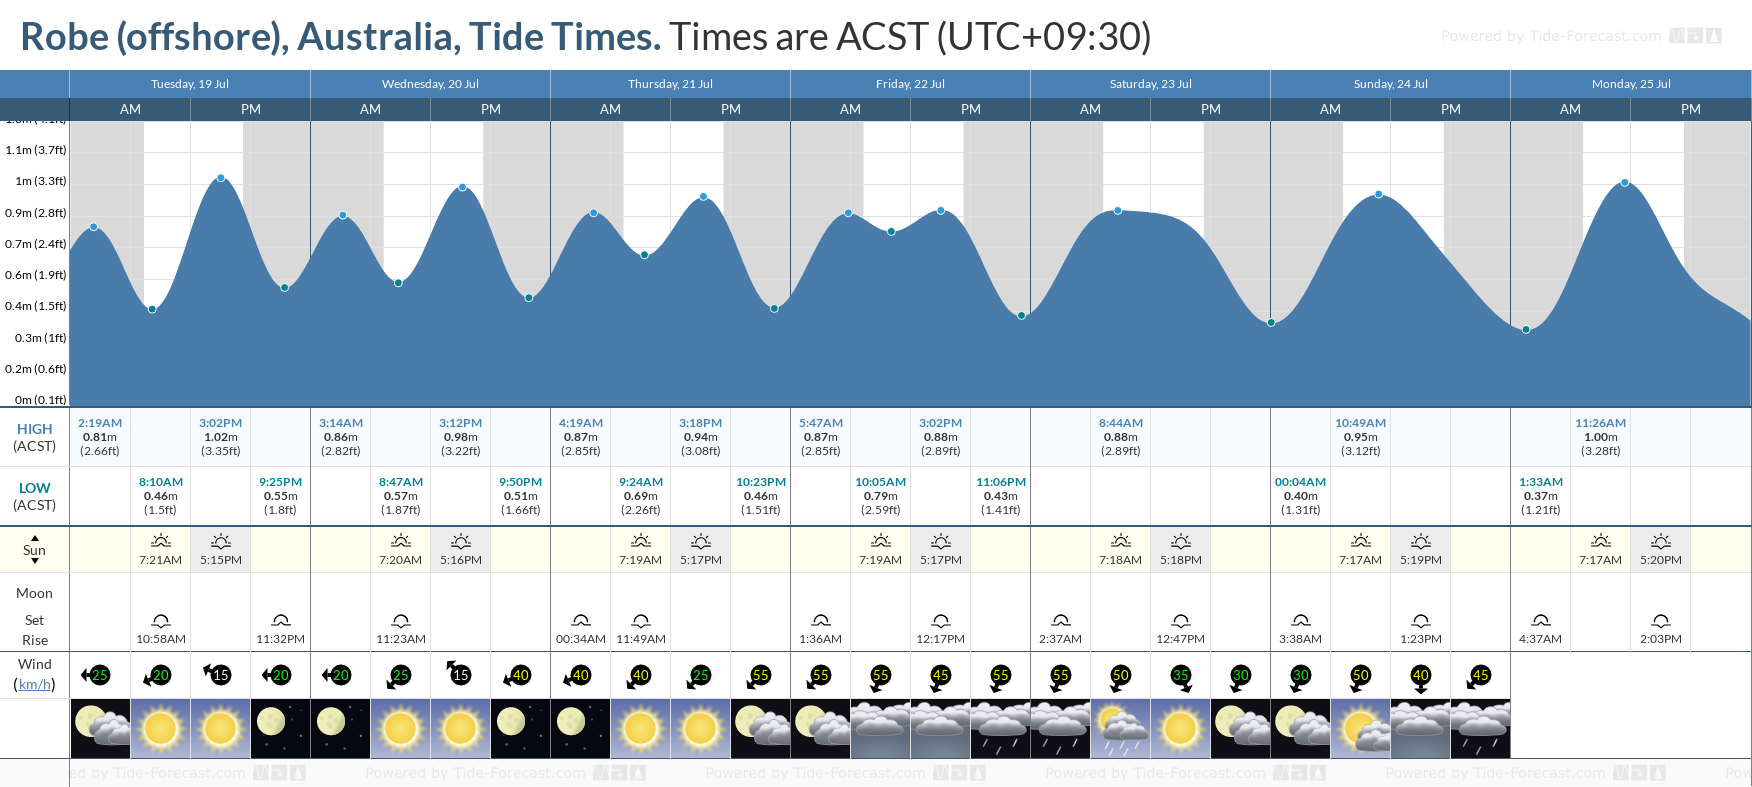 Robe (offshore), Australia Tide Chart including high and low tide tide times for the next 7 days